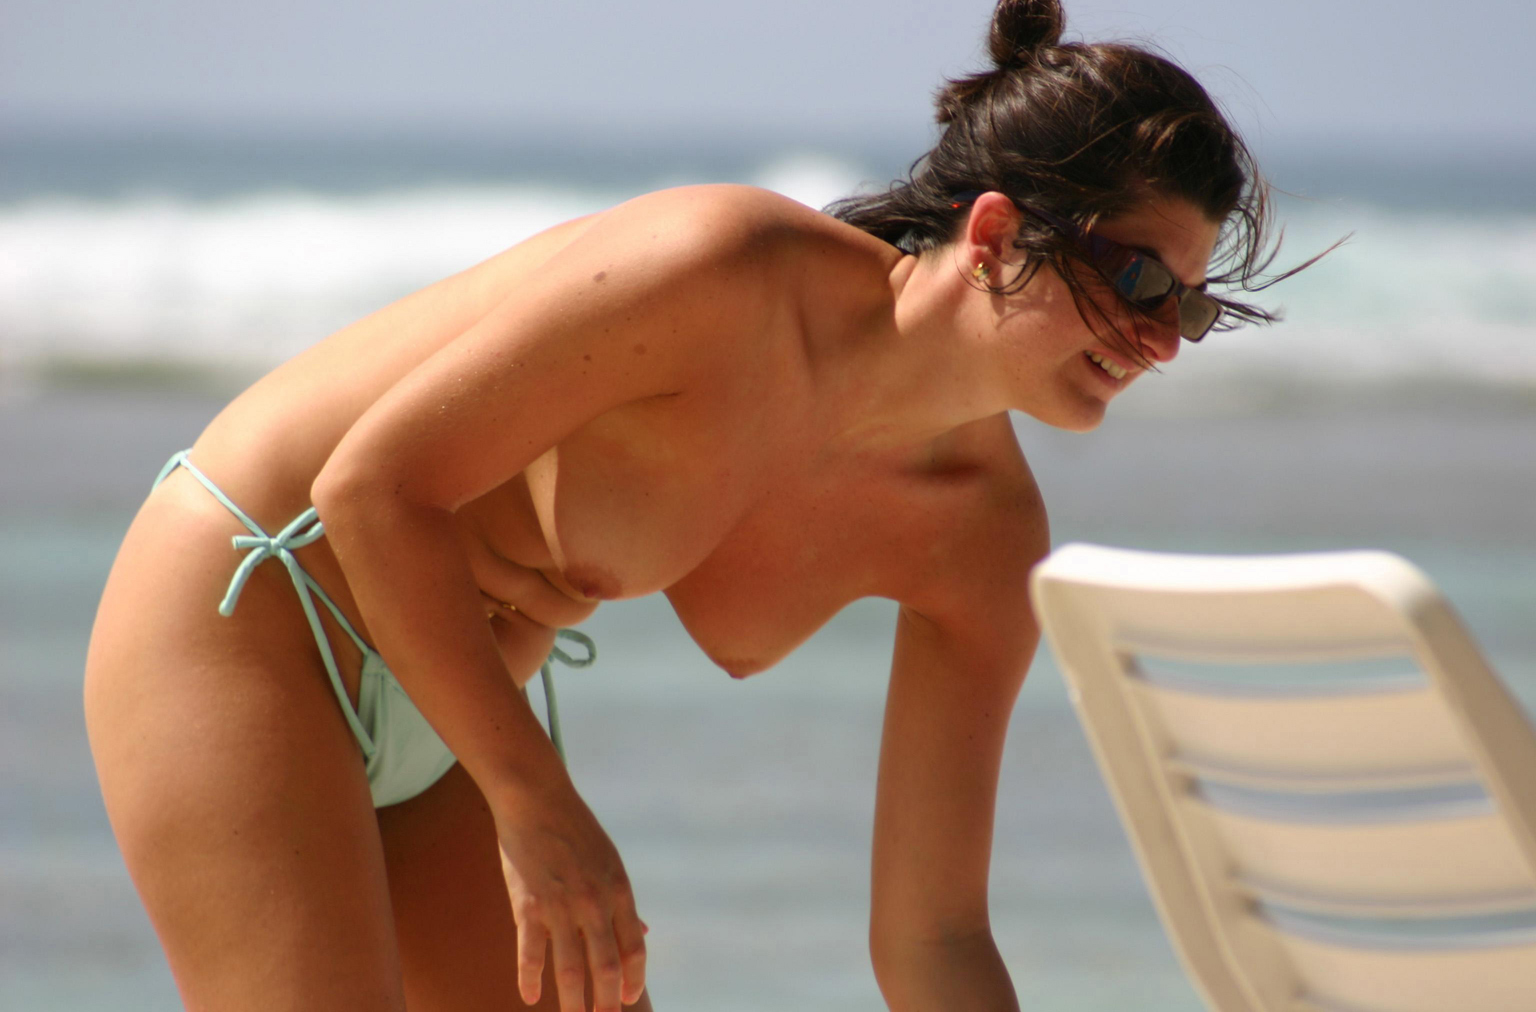 Topless brunette babe caught by a spy on nudist beach with hard pokies and wearing sunglasses